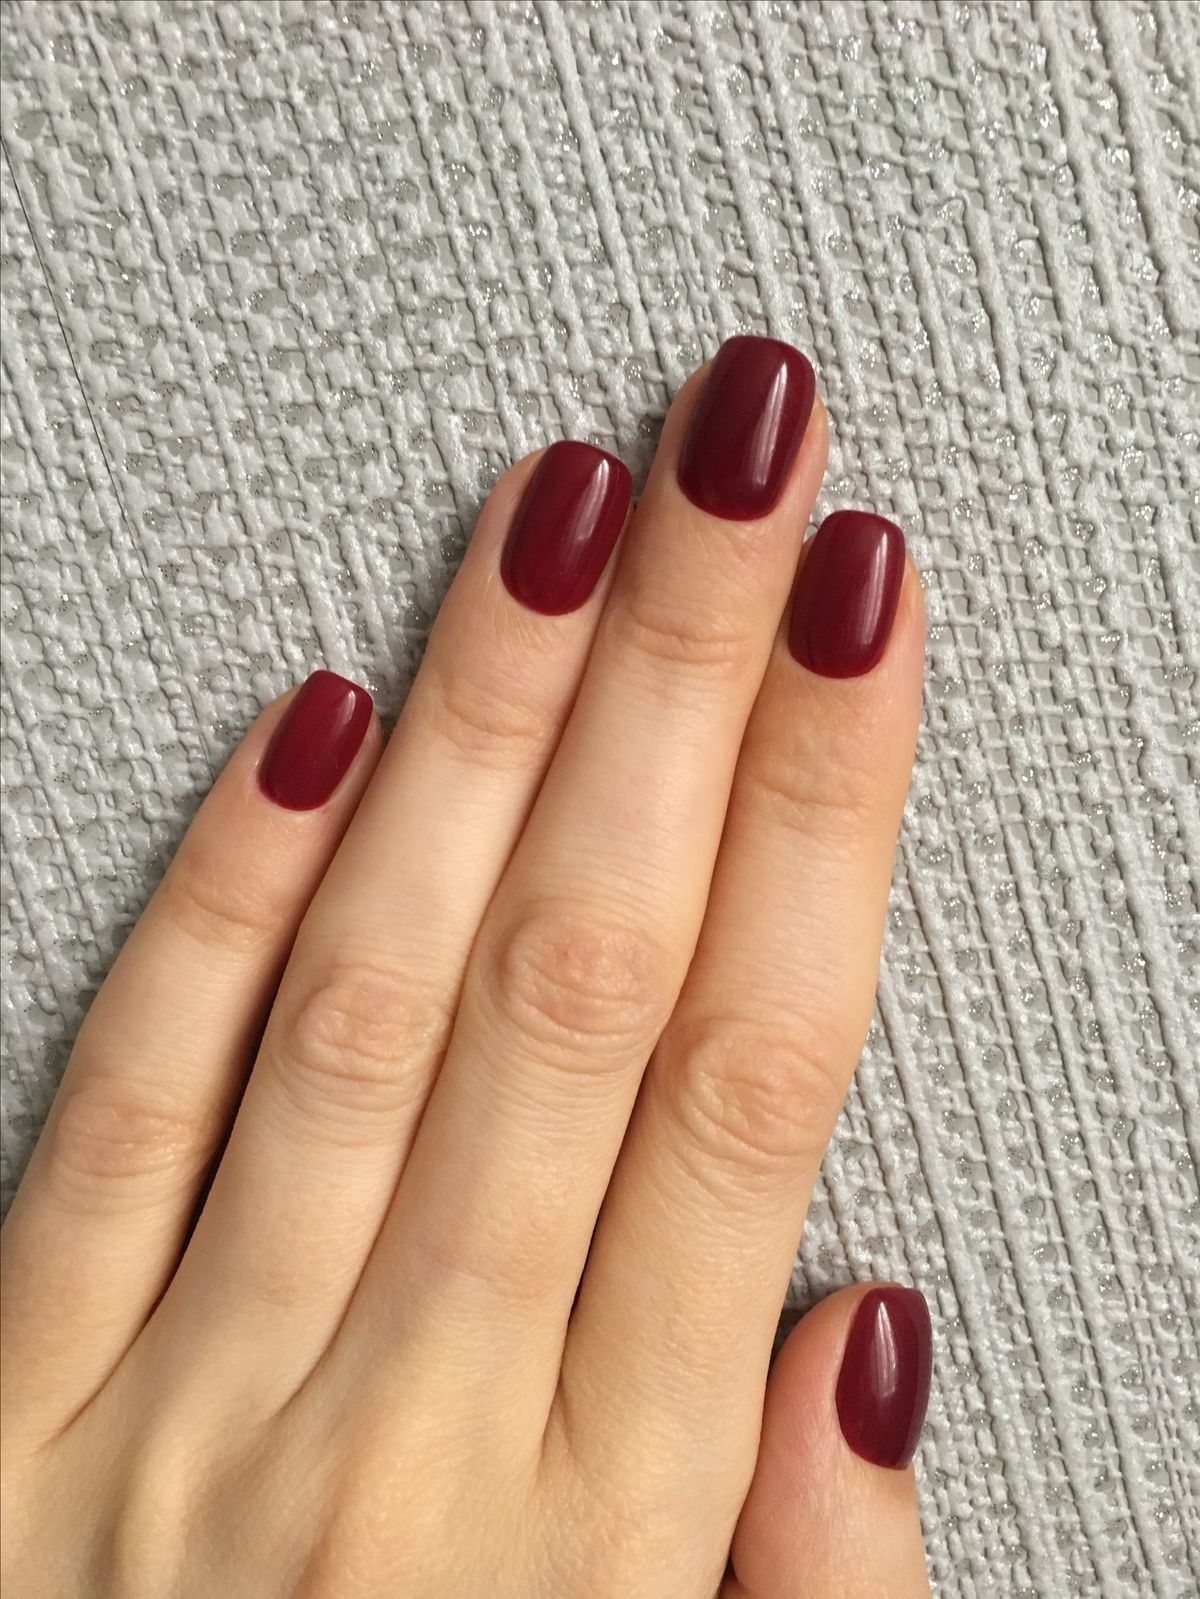 70 Simple Nail Design Ideas That Are Actually Easy Red Nails Burgundy Nails Trendy Nails